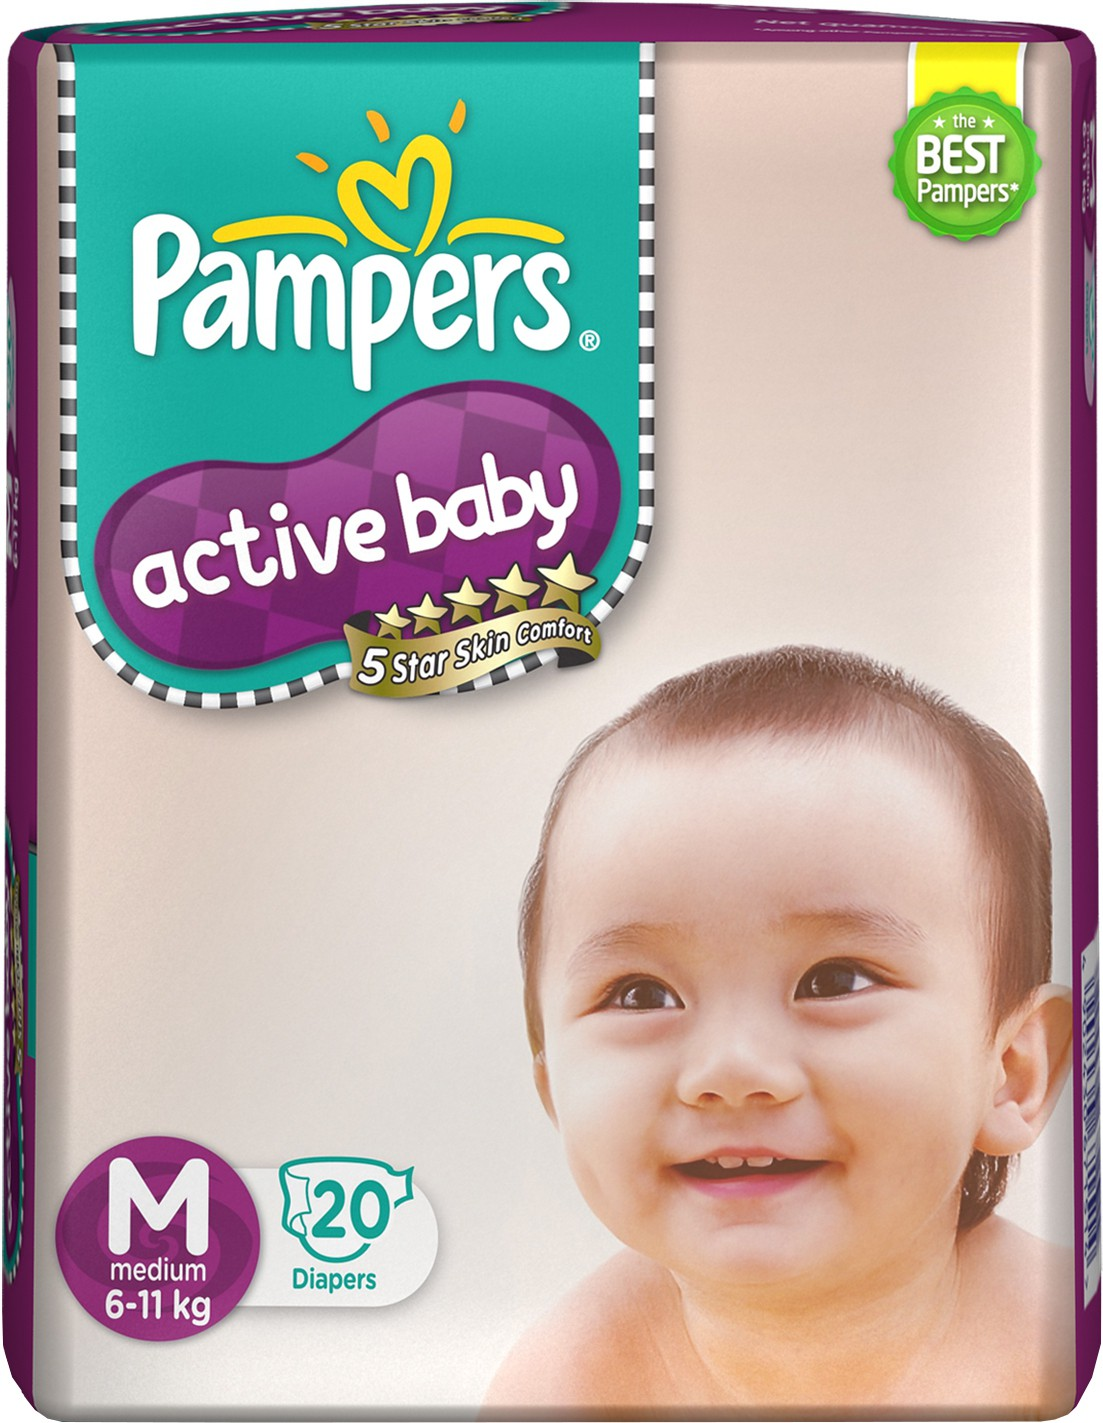 Pampers Active Baby Diapers - Medium (20 Pieces)